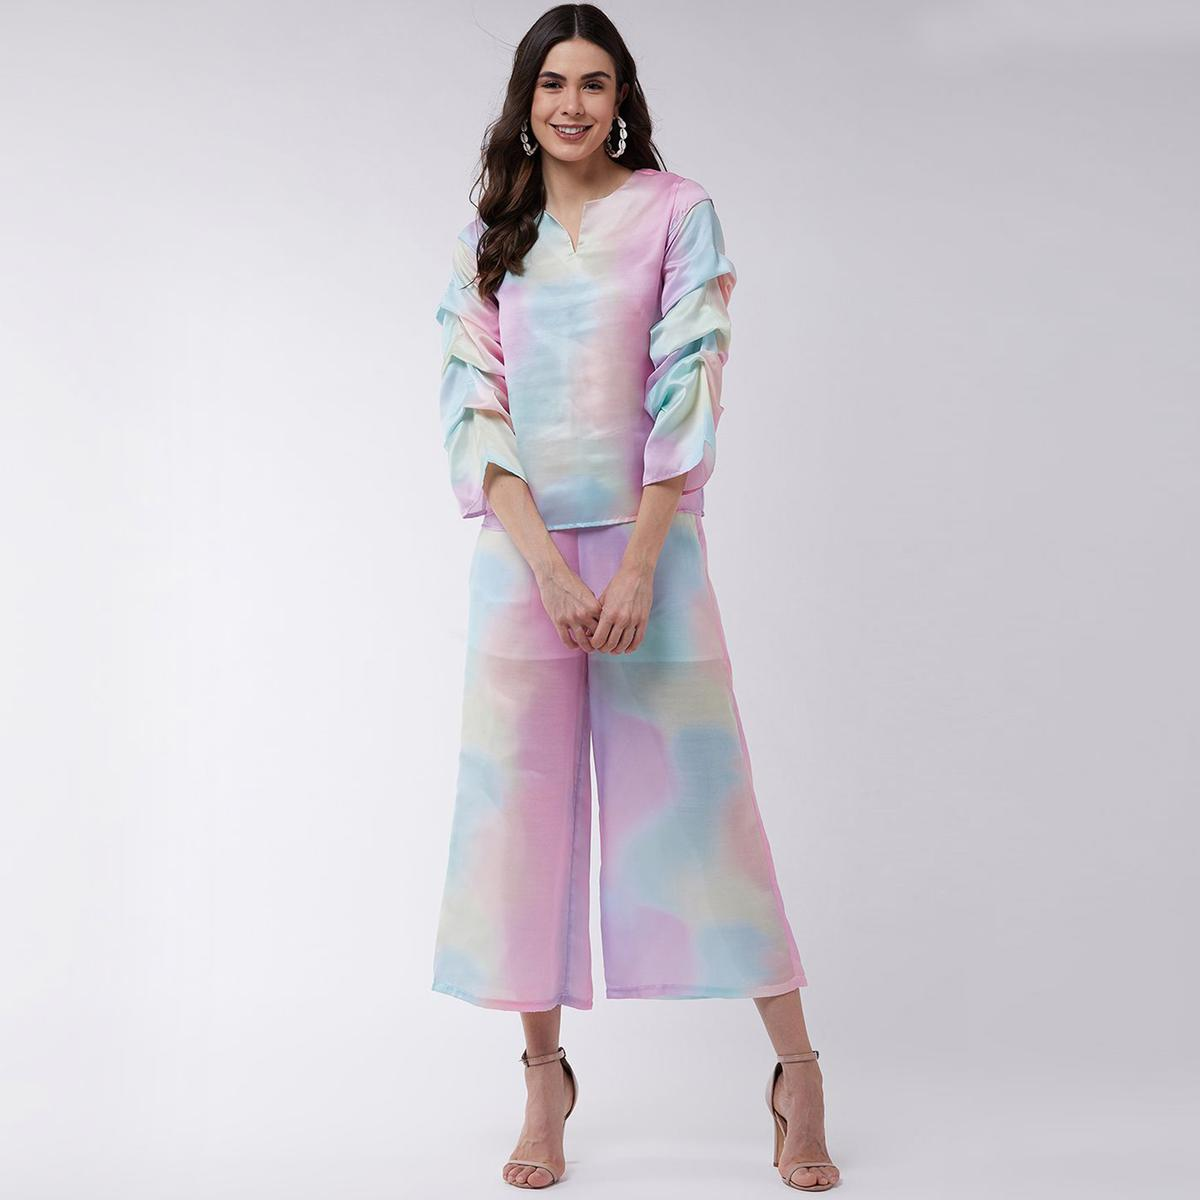 Zima Leto - Women's Multi Colored Candy Digital Printed Top With Pleated Sleeves And Matched Pants